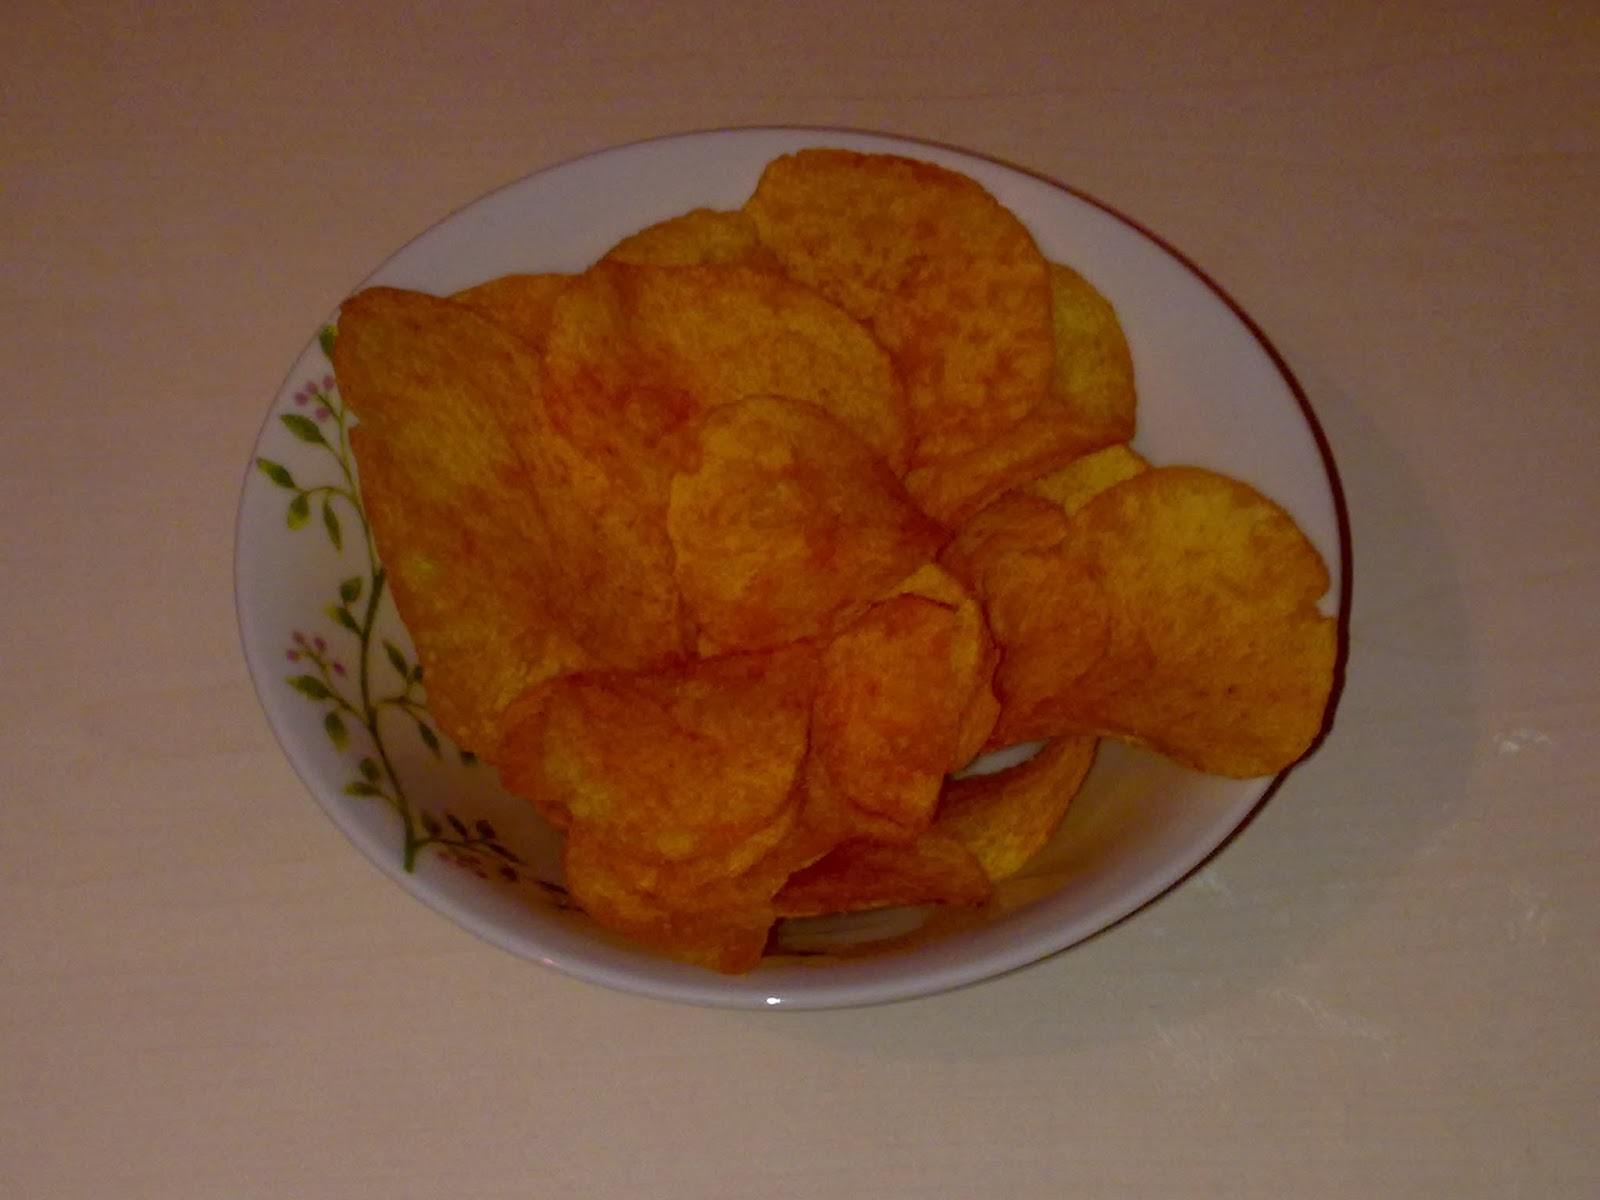 Chips krebserregend